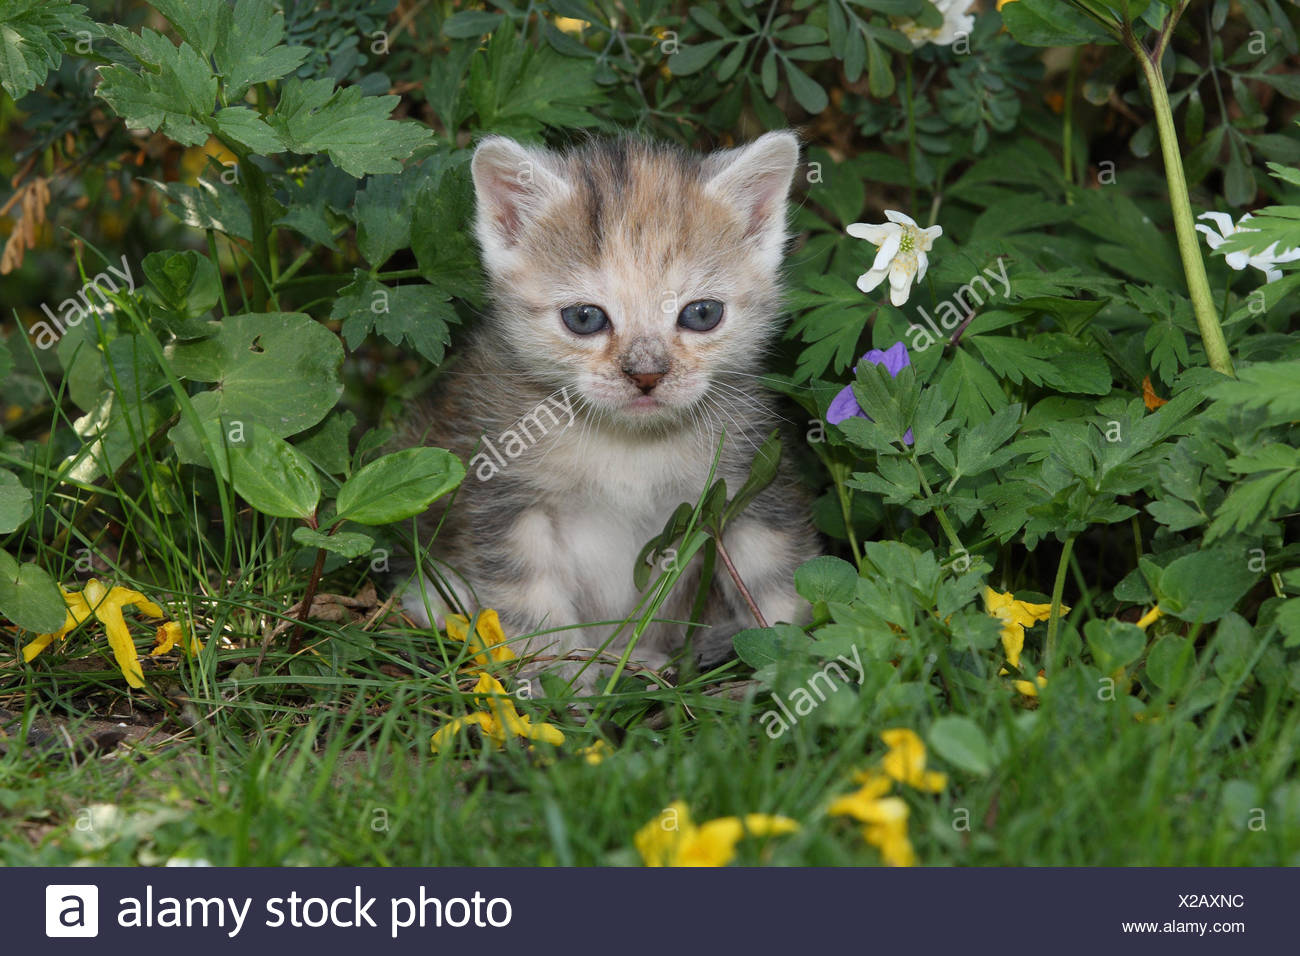 Cat, young, sit, meadow, garden, animals, mammals, pets, small cats, Felidae, domesticates, house cat, young animal, kitten, small, awkward, clumsy, helplessly, sweetly, play, curiosity, flowers, hervorschauen, plants, individually, alone, young animals, animal baby, nature, outside, - Stock Image